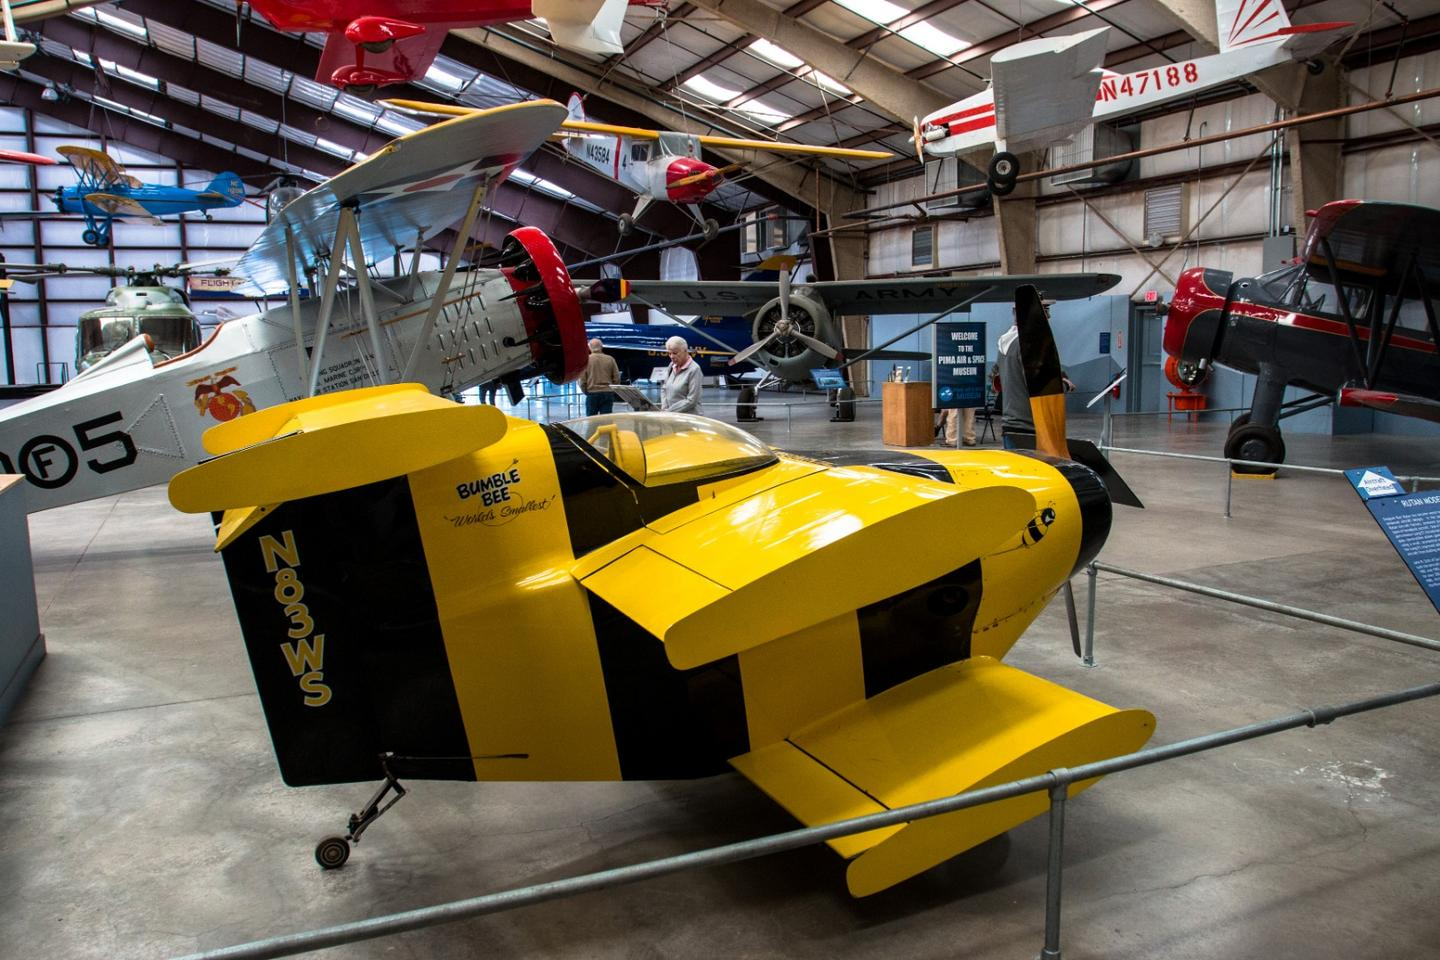 The adorable Starr Bumble Bee was built to take a crack at the record for the world's smallest manned aircraft, with a 6'6 wingspan, a 9'4 length and a height of just 4'1. It took the Guinness record when it made its first flights in January 1984, and was capable of speeds up to 180 mph - but could only fly to a service ceiling of 3,000 ft due to its tiny wings.